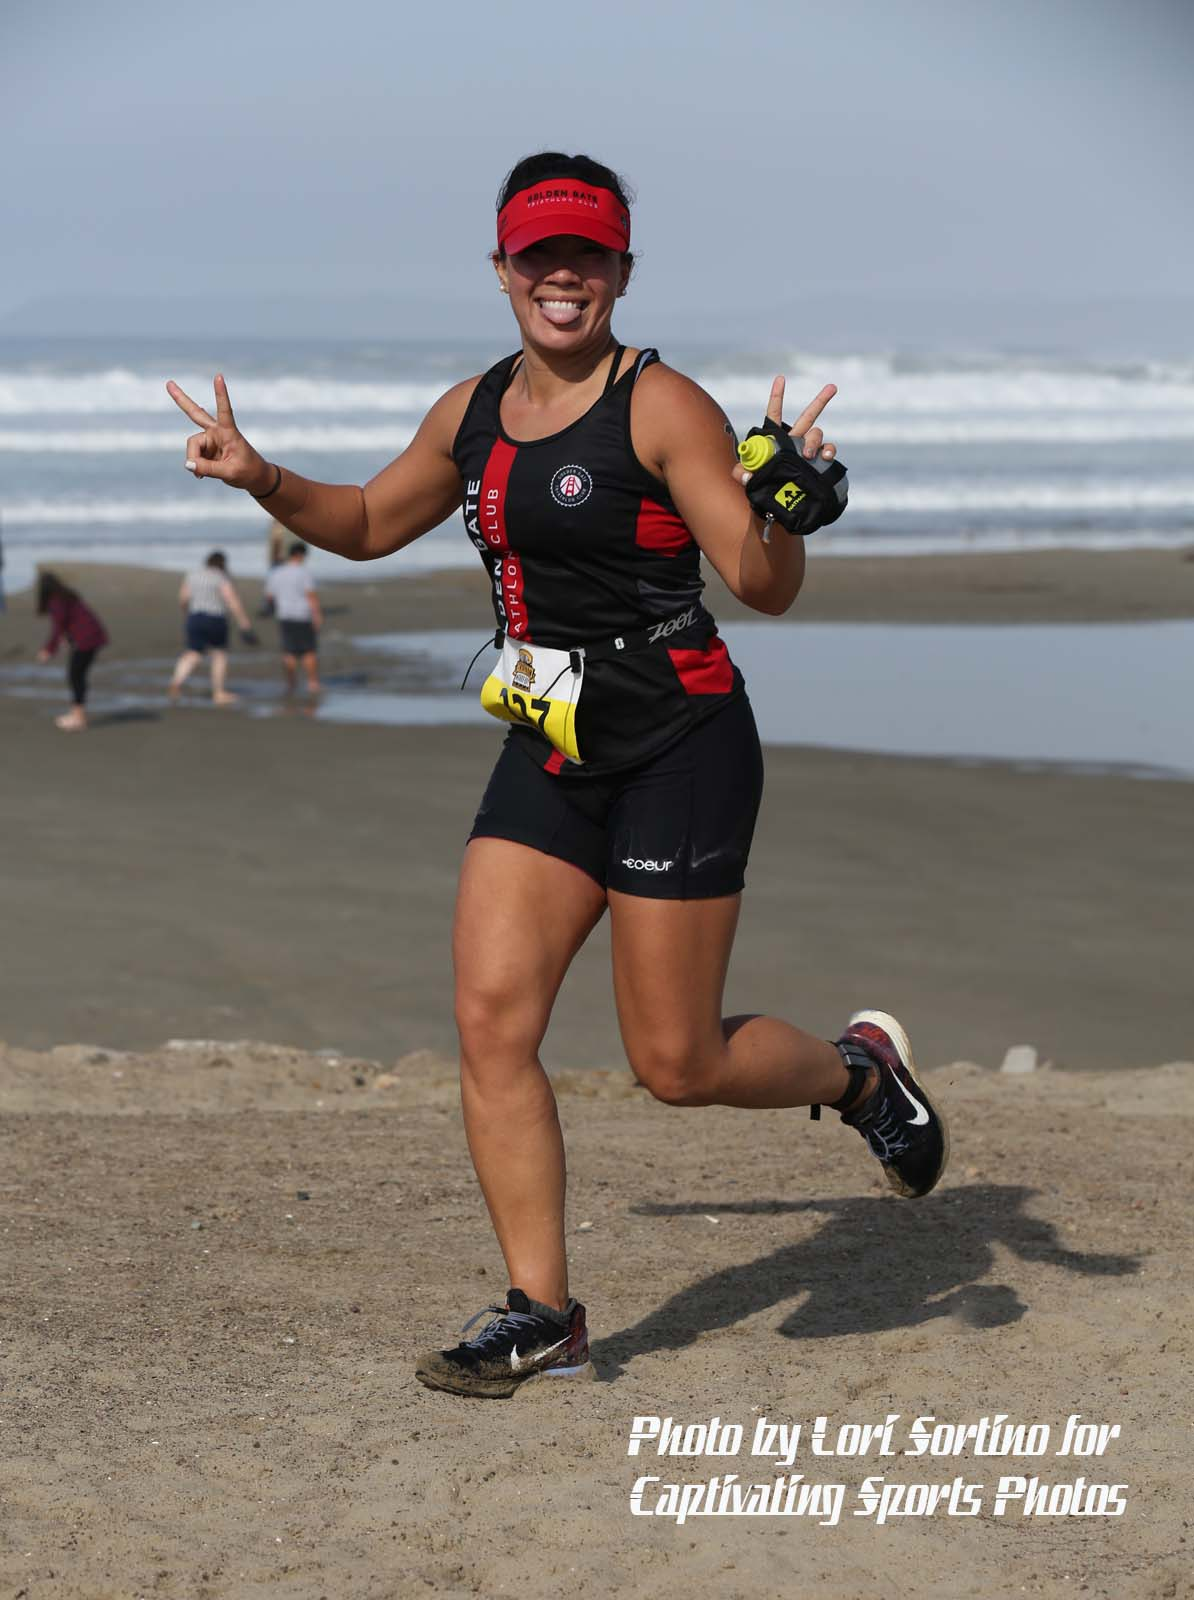 female triathlete runner peace hands red had smiling Morro Bay Tri